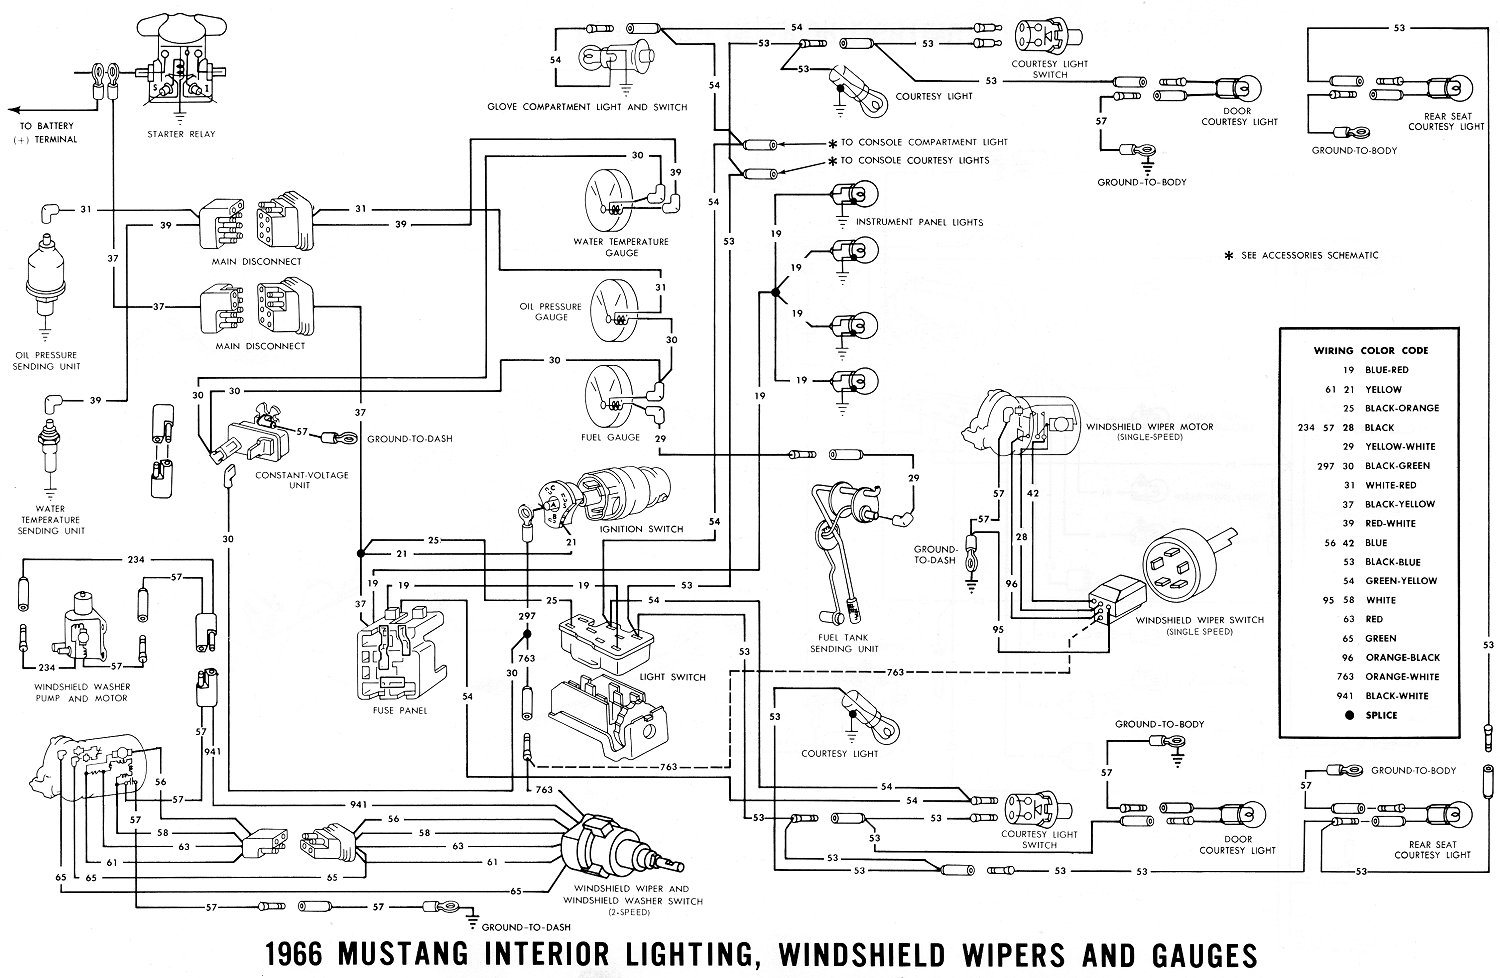 Wiring To Headlight Switch In Dash Below Wiring Diagram Click To